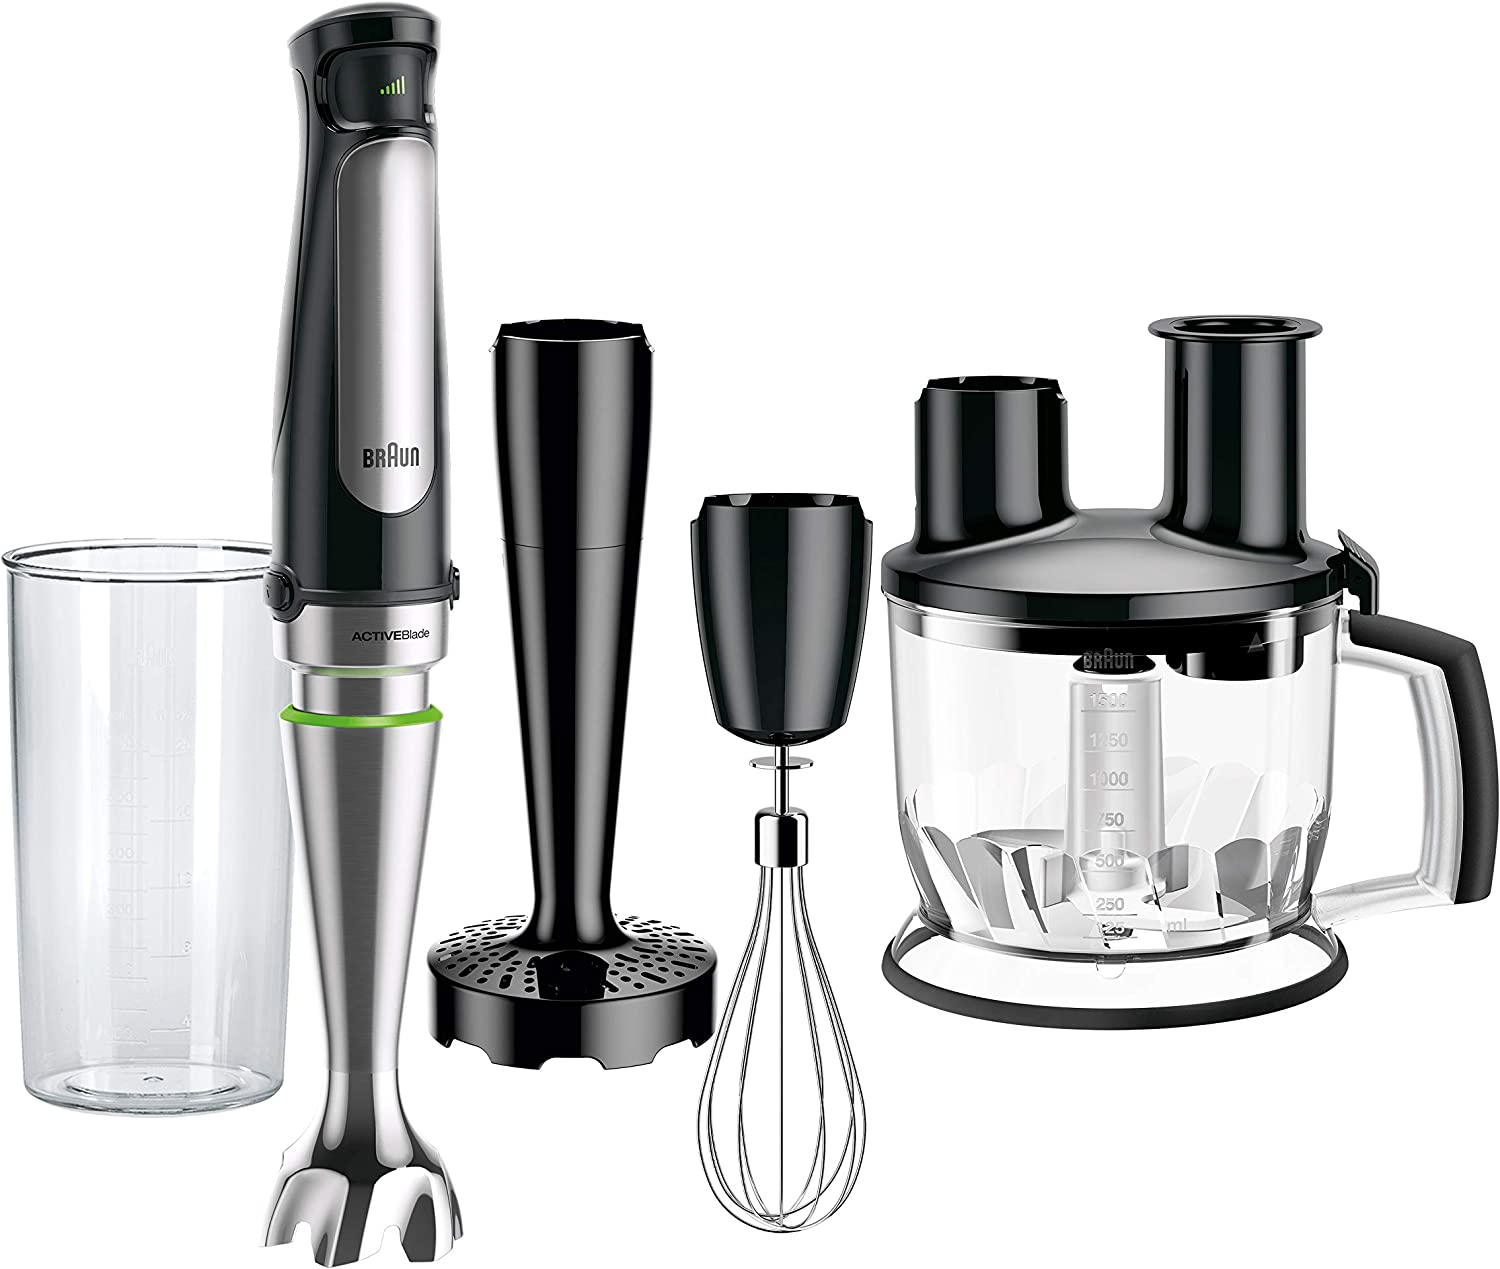 Braun MultiQuick MQ7077 4-in-1 Immersion Hand, Powerful 500W Stainless Steel Stick Blender, Variable Speed + 6-Cup Food Processor, Whisk, Beaker, Masher, Faster Blend